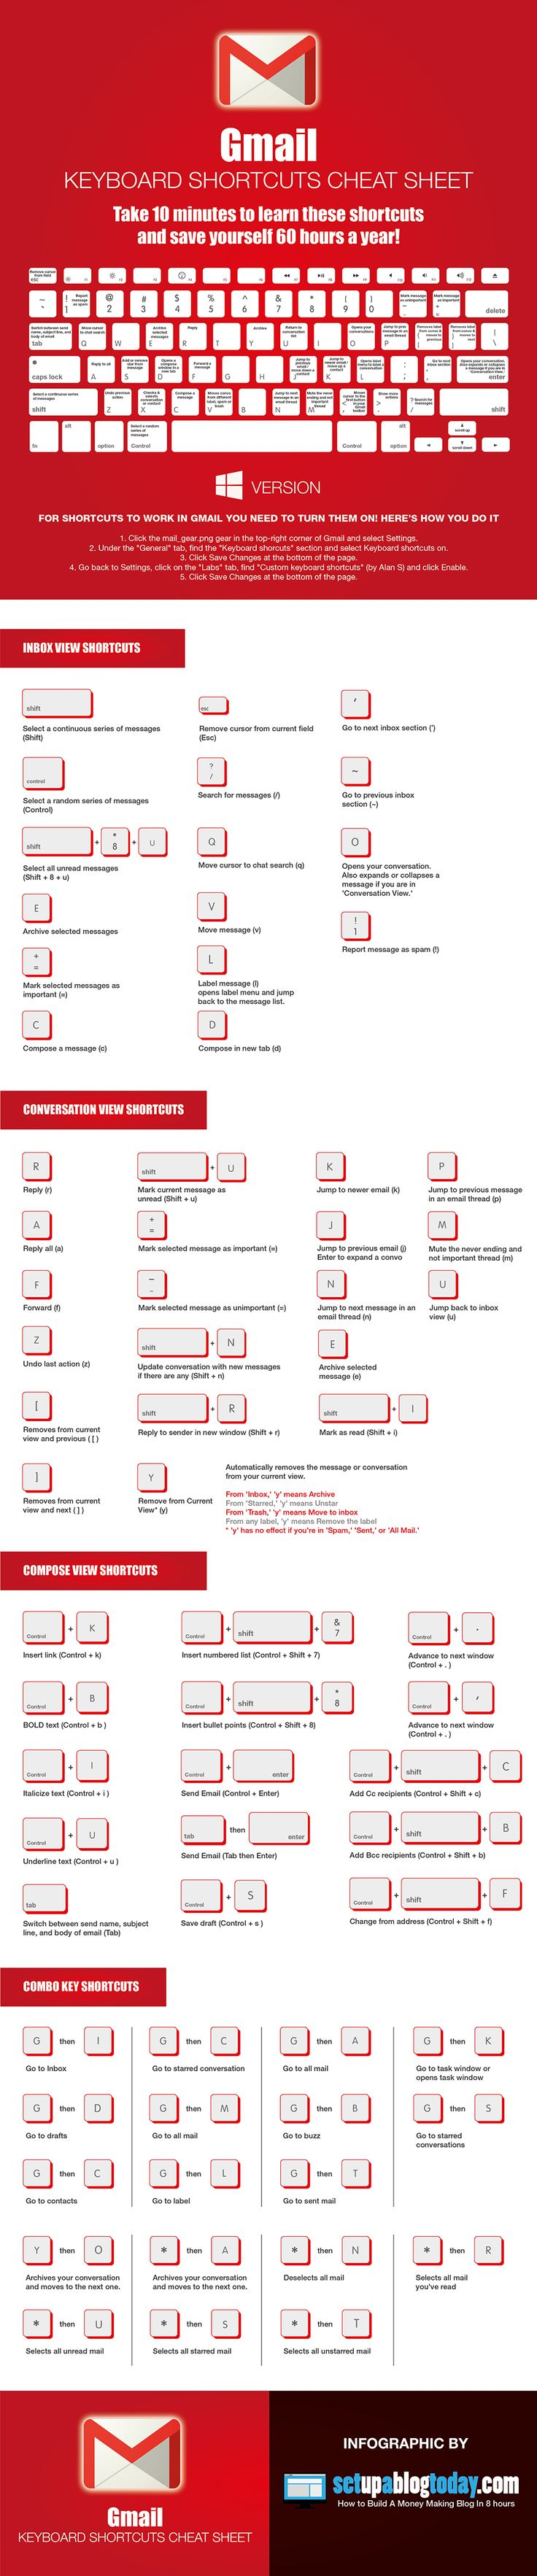 Gmail Keyboard Shortcuts Cheat Sheet #Infographic